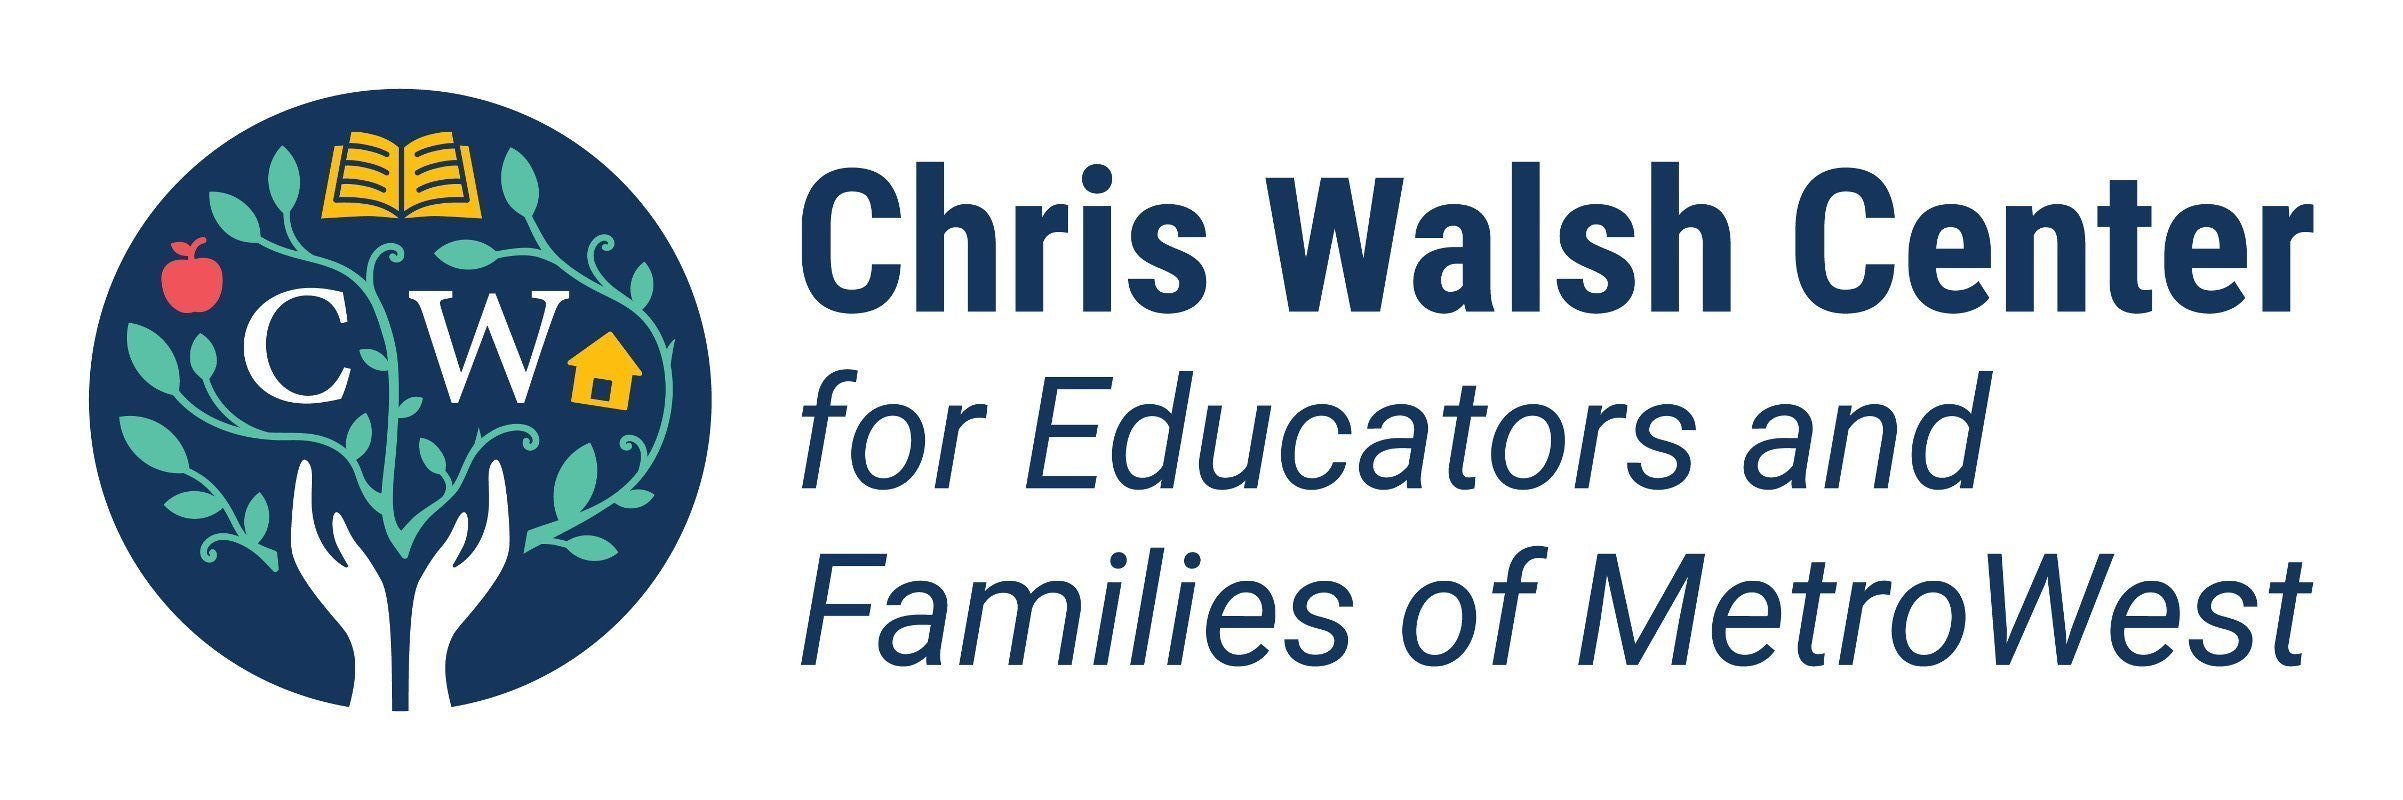 Chris Walsh Center Logo